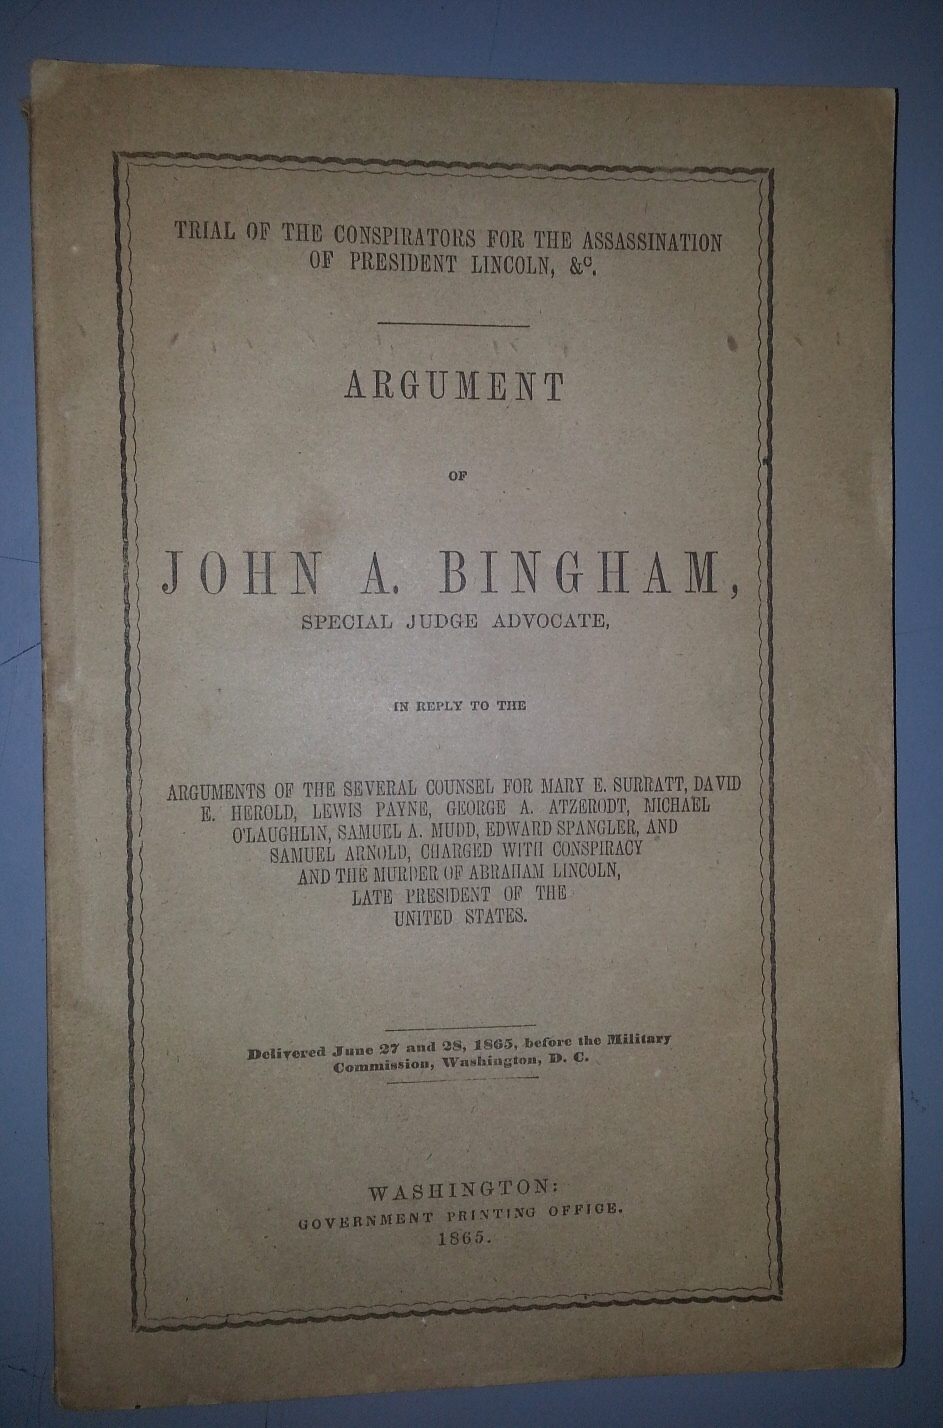 Trial of the Conspirators for the assassination of President Lincoln; Argument of John A. Bingham ... in reply to the arguments of the several Counsel ... Payne ... delivered June 27 and 28, 1865, Bingham, John A